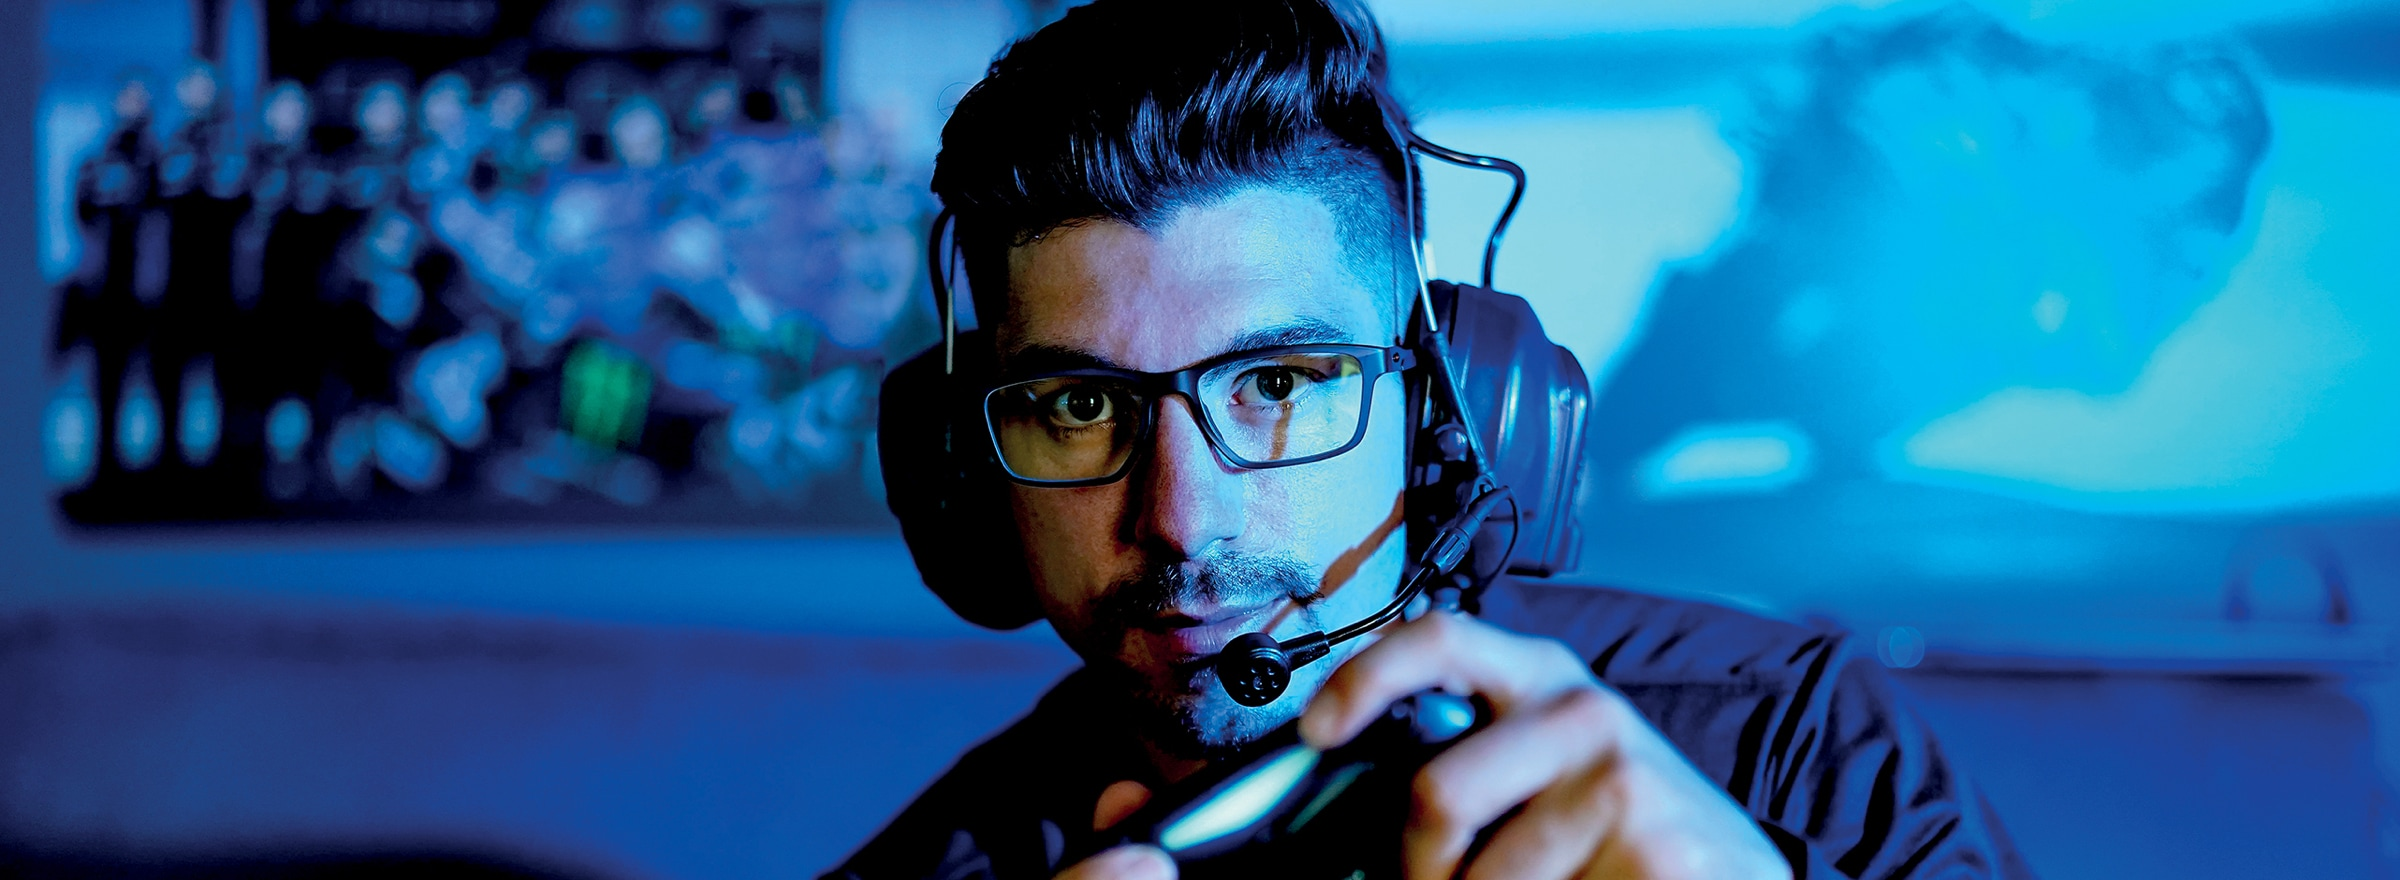 Gaming glasses - Oakley Prizm Gaming